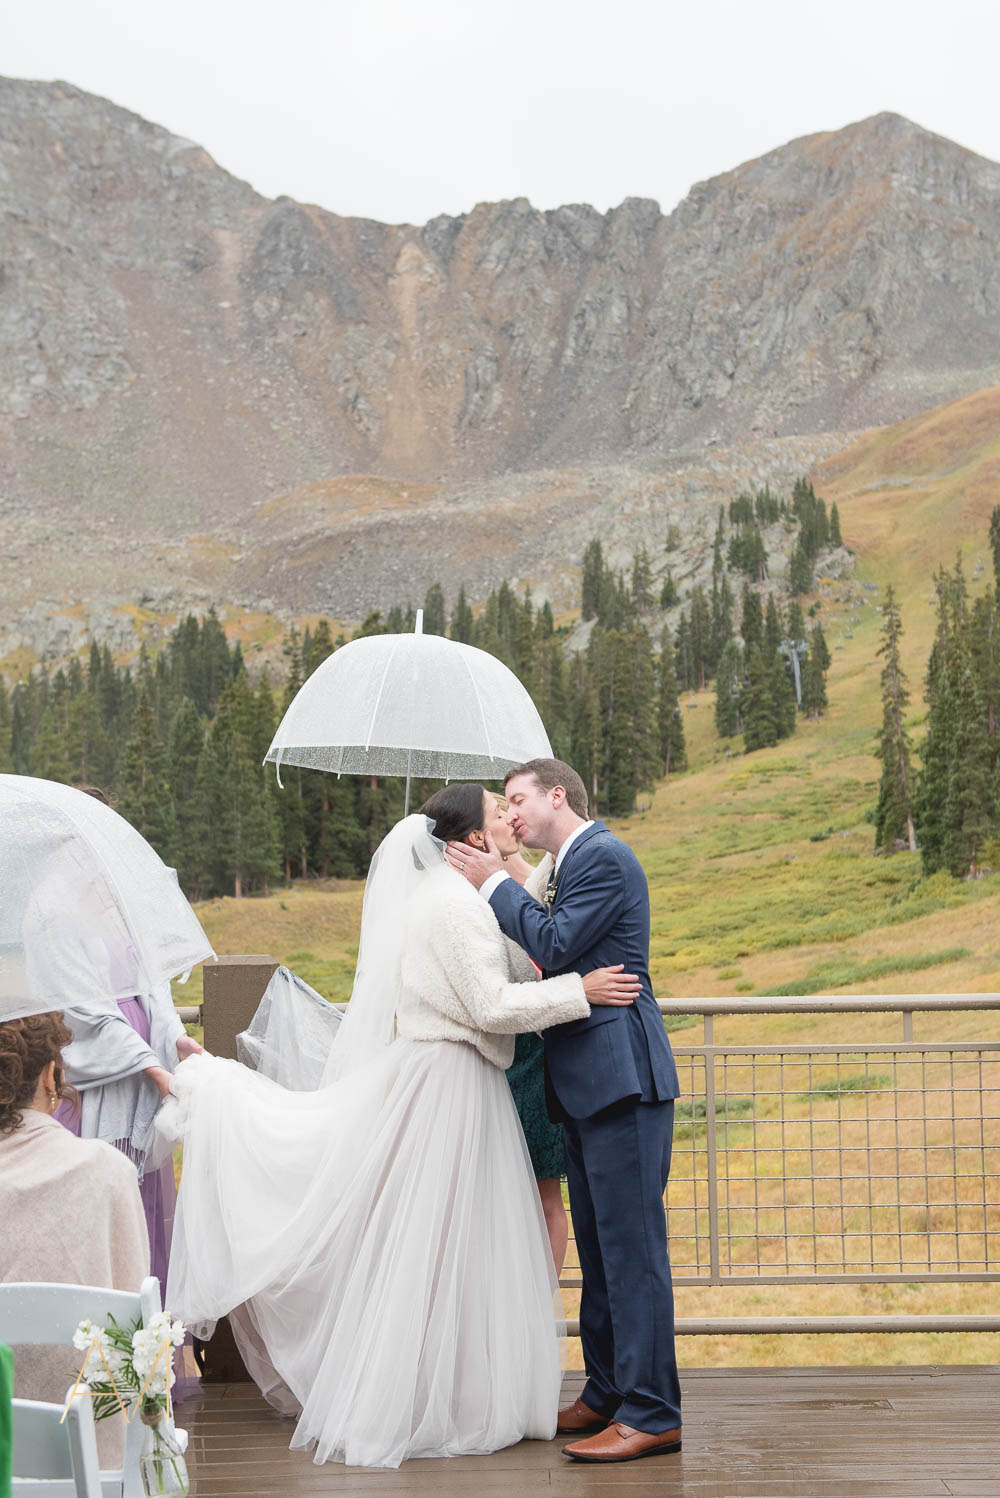 AshleighMillerWeddings-JennyAllen-ArapahoeBasin-Keystone-Colorado-3541.jpg